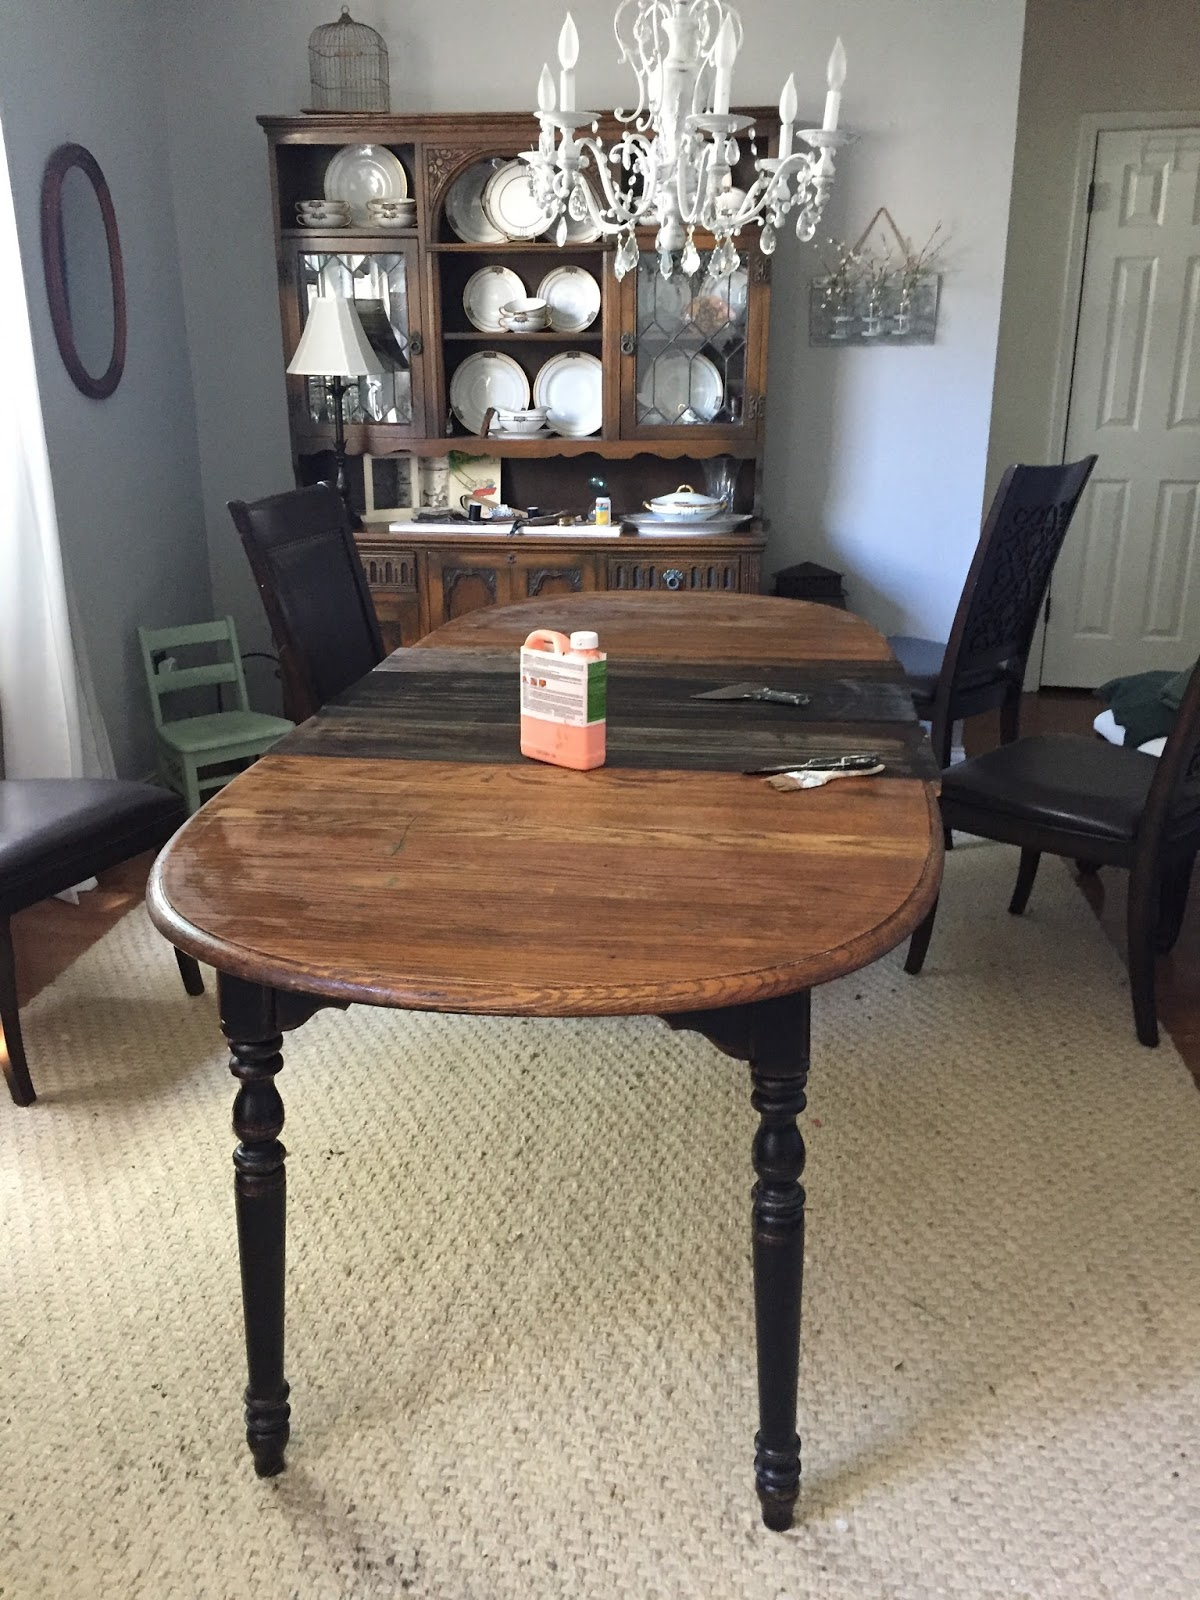 let 39 s add sprinkles refinishing the dining room table